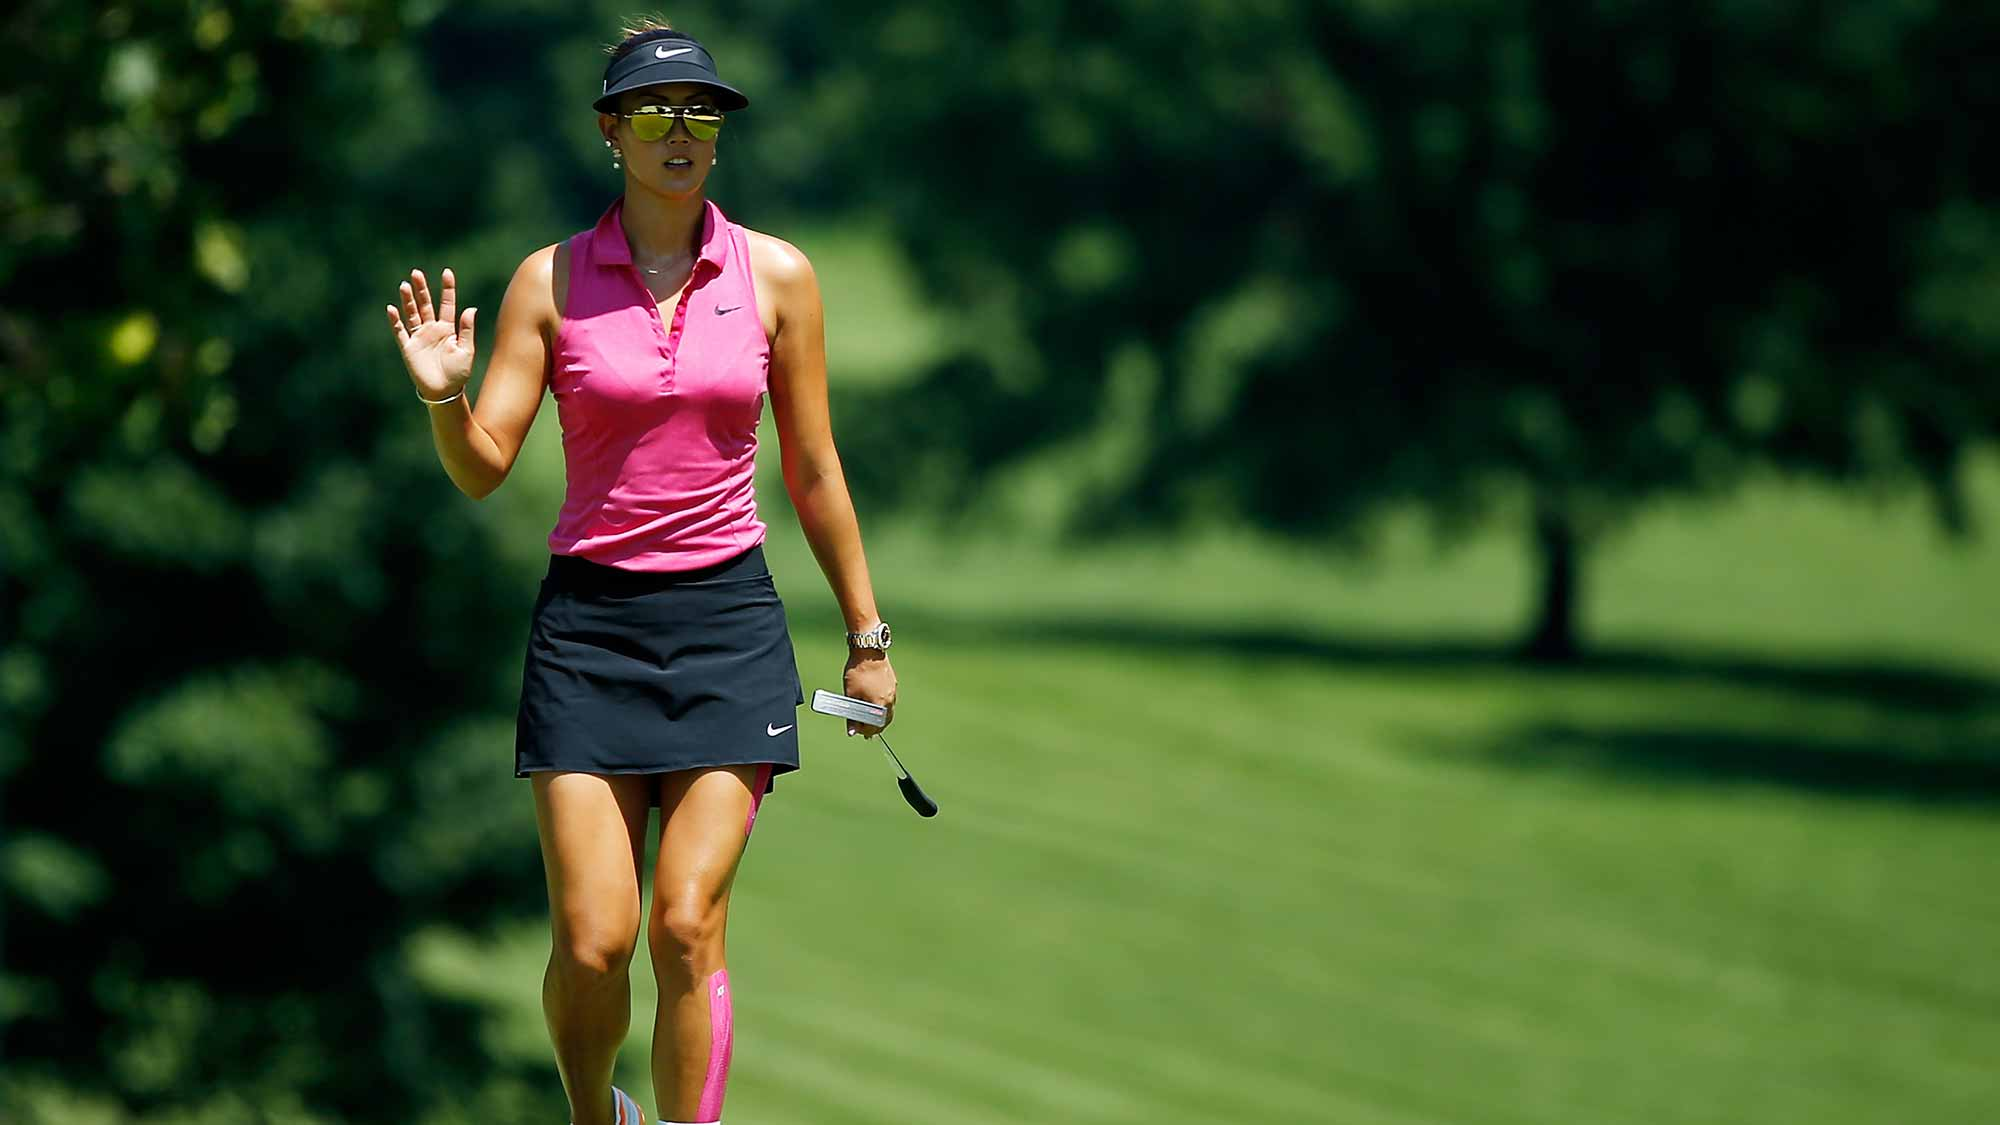 Michelle Wie of the United Staes waves as she walks to the eighth green during the third round of the U.S. Women's Open at Lancaster Country Club